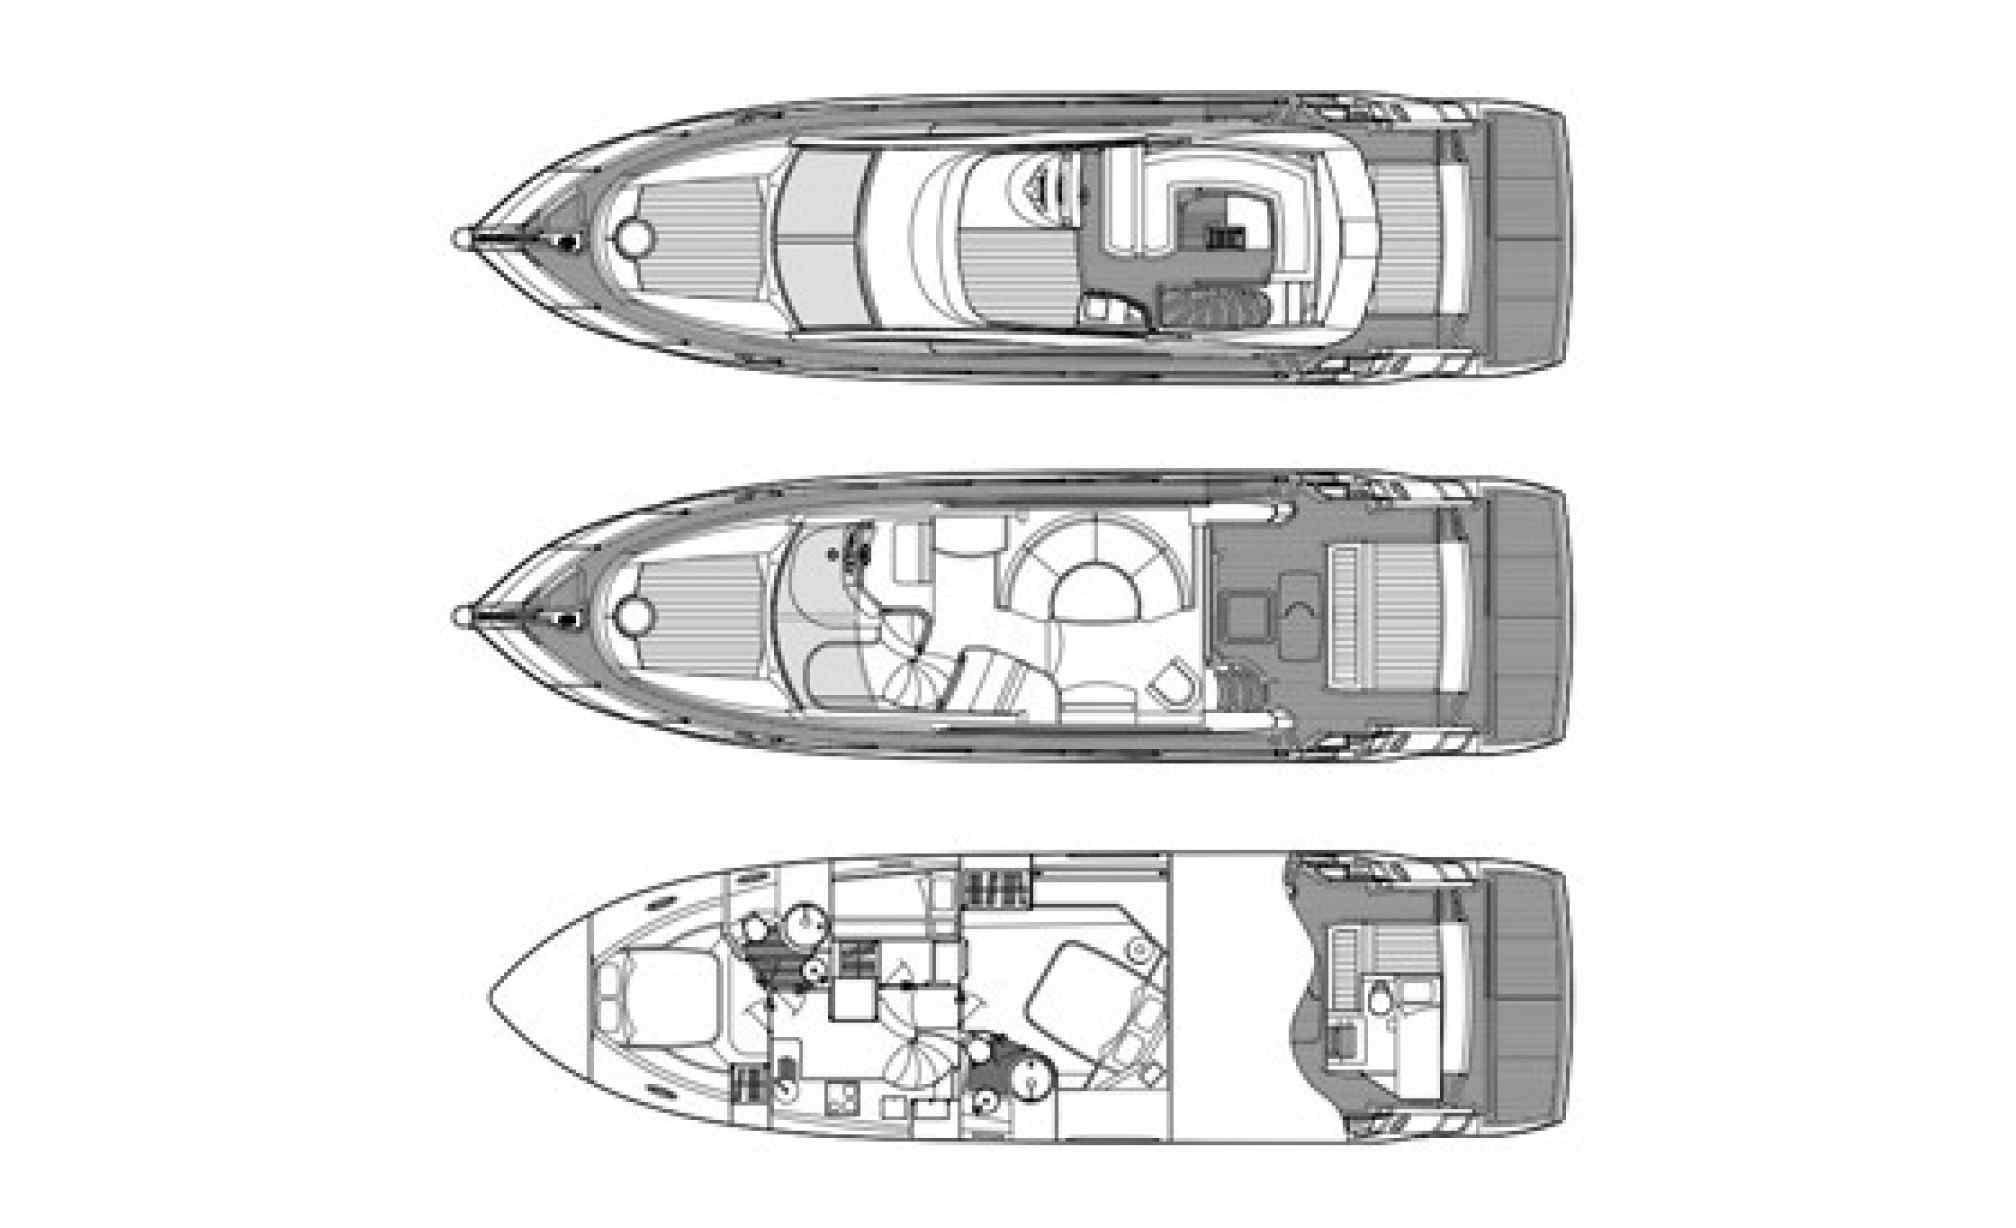 Sunseeker manhattan 52 charter yacht layout